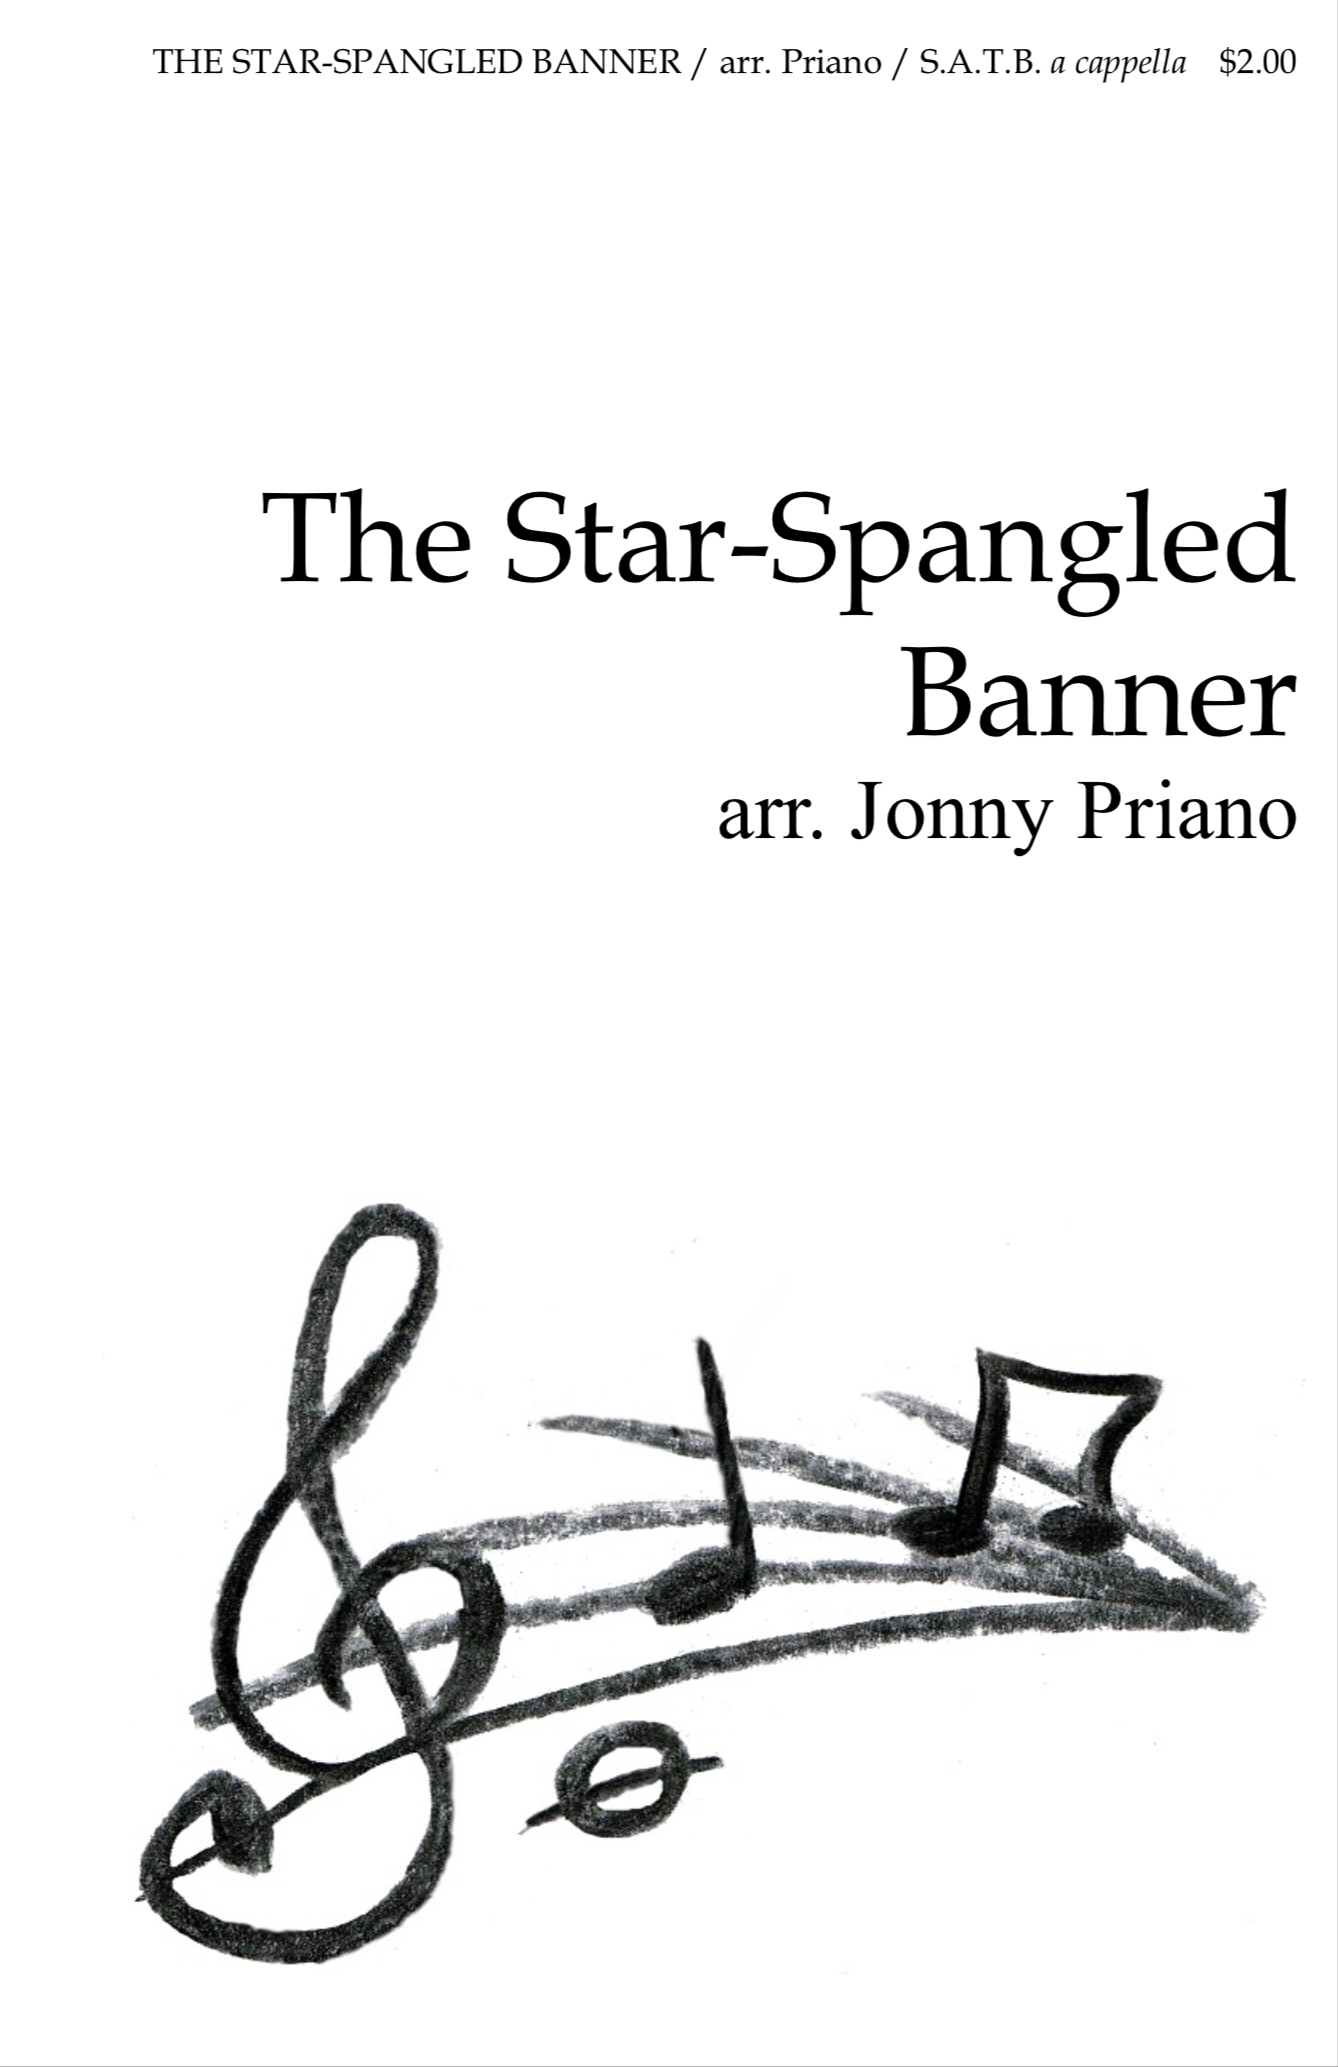 The Star Spangled Banner by arr. Priano